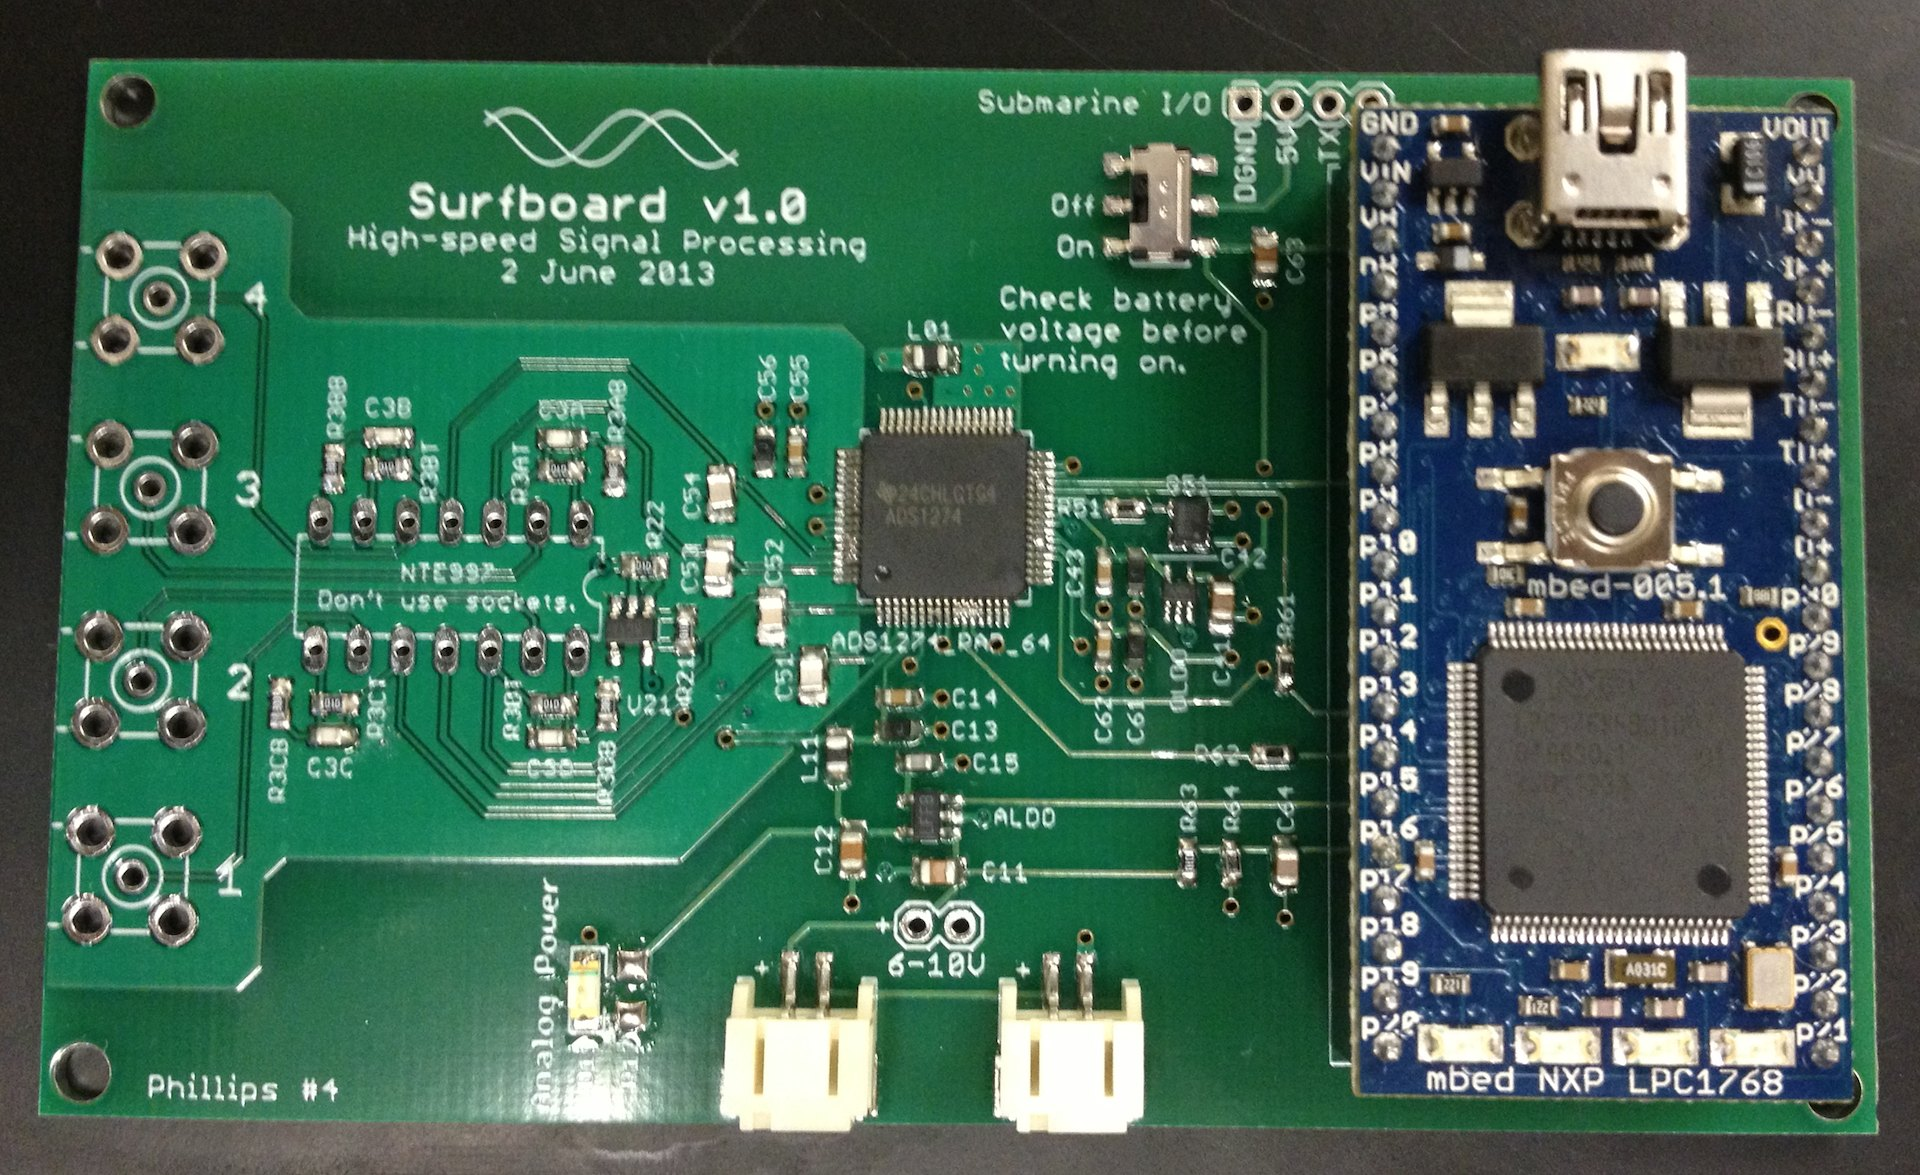 The Surfboard circuit board